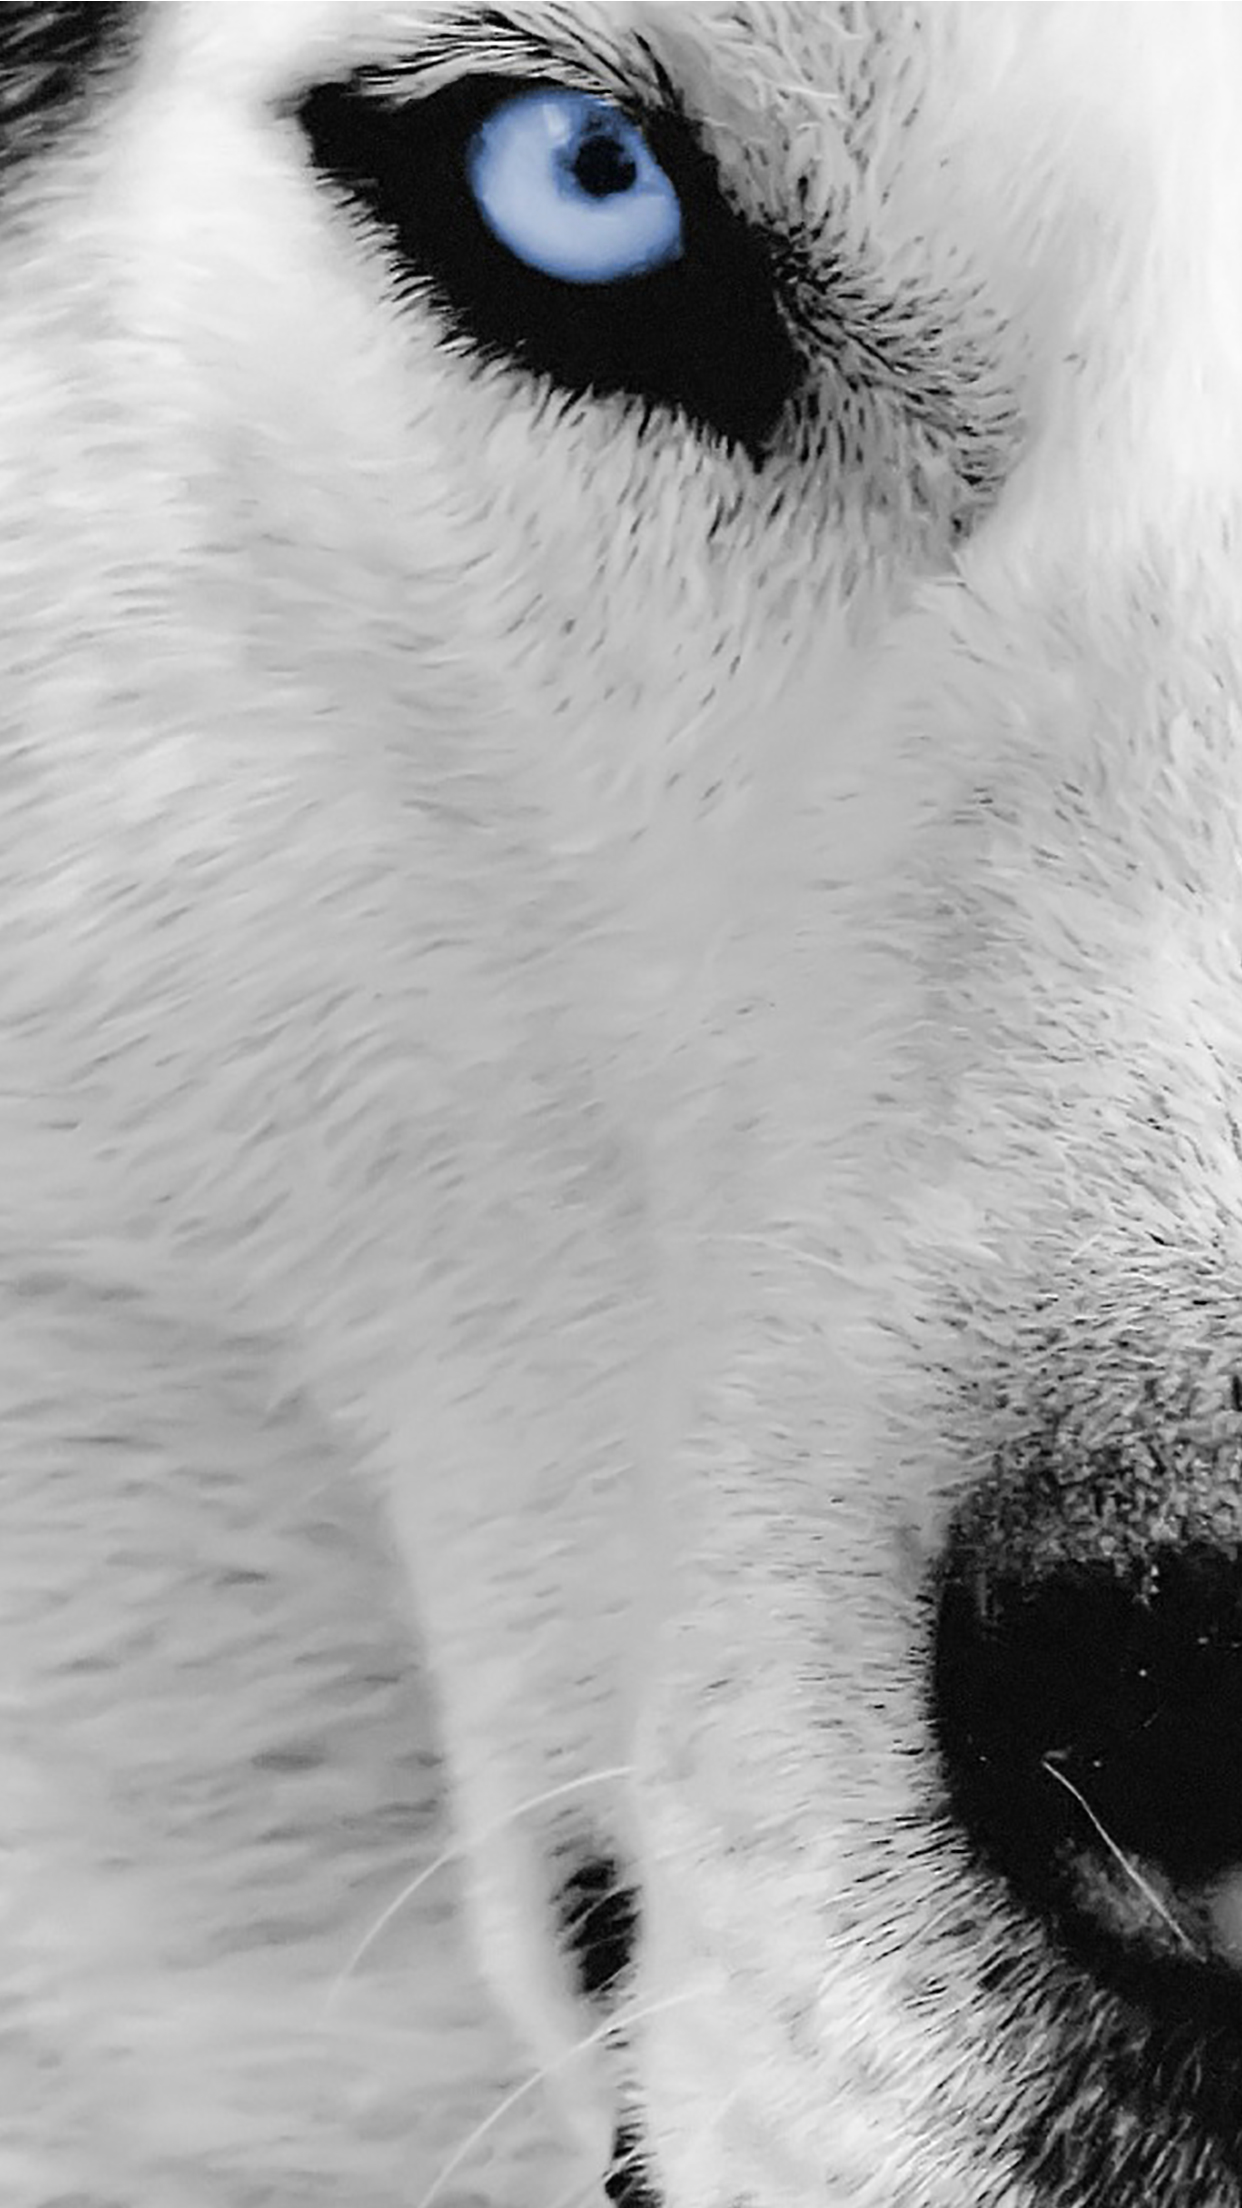 wallpaper hd iphone wolf eye free download